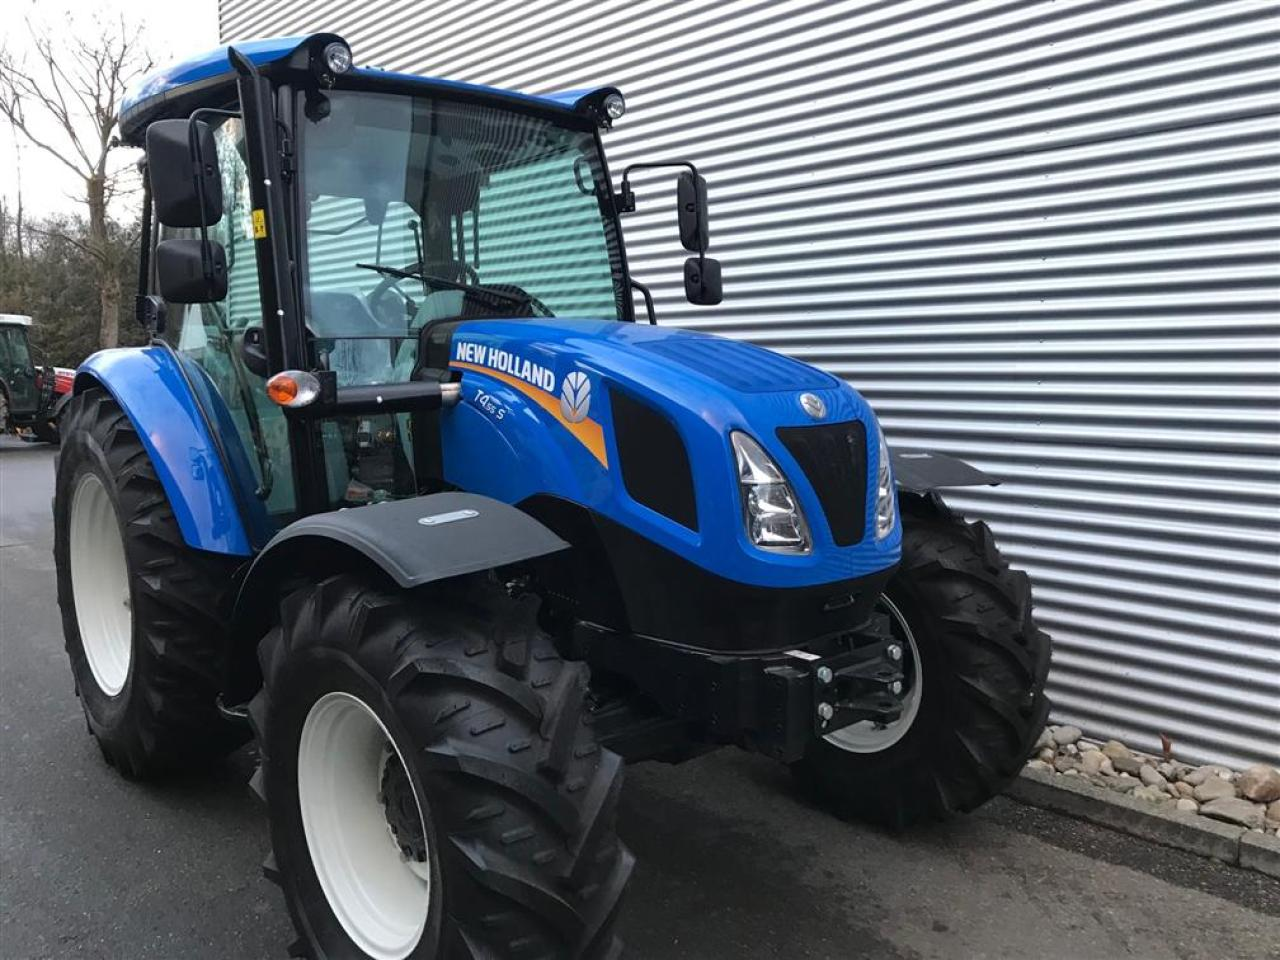 New Holland T 4S.55 CAB